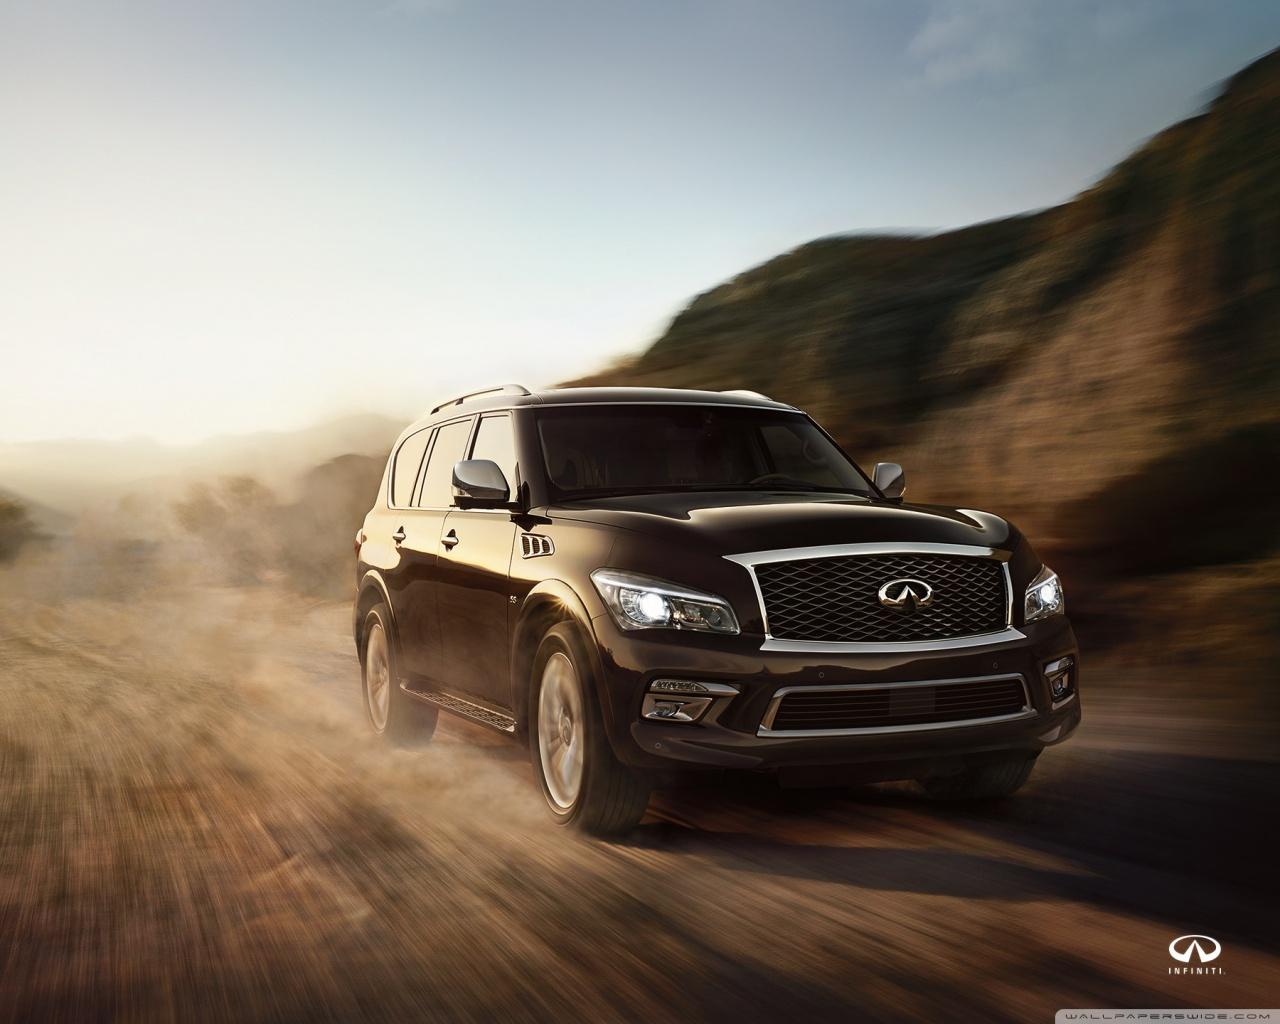 1280x1024 - Infiniti QX80 Wallpapers 7